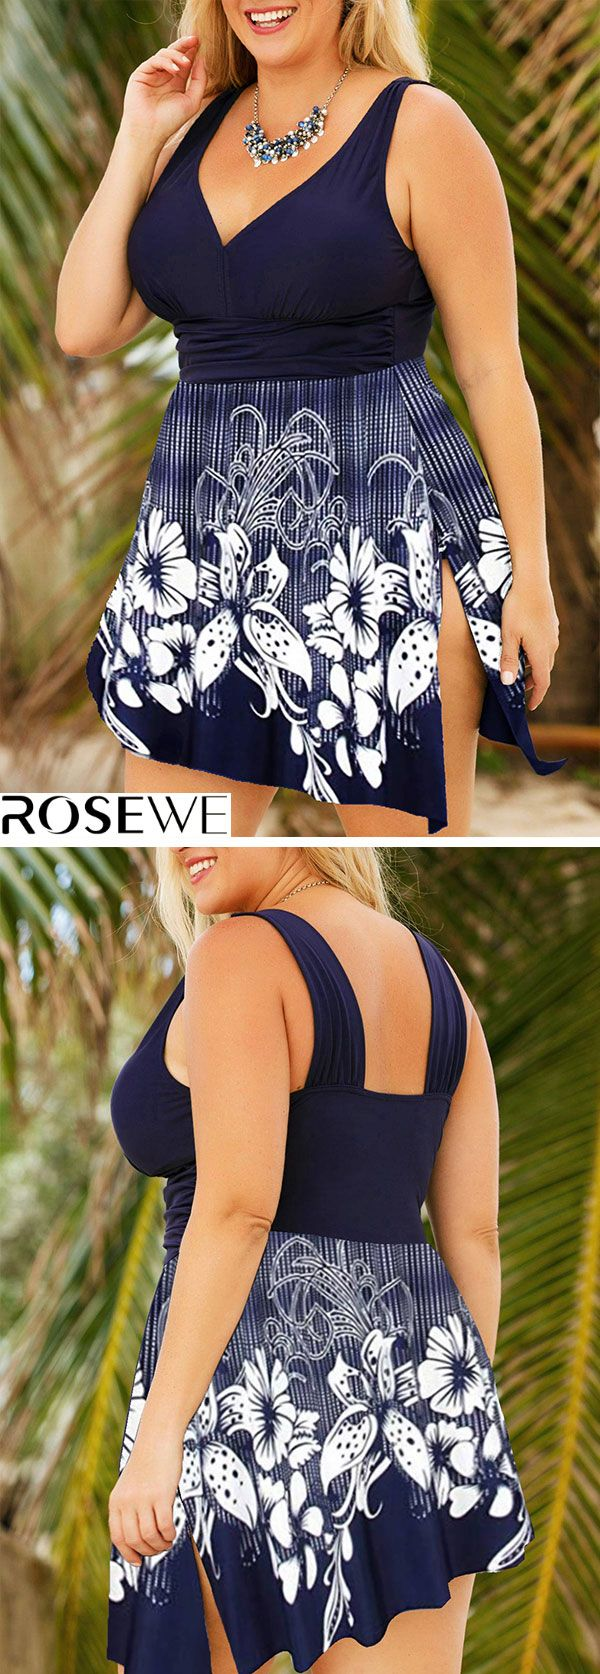 Hot Sale & Free Shipping. Best swimwear for curvy girl. Warm weather is coming, …